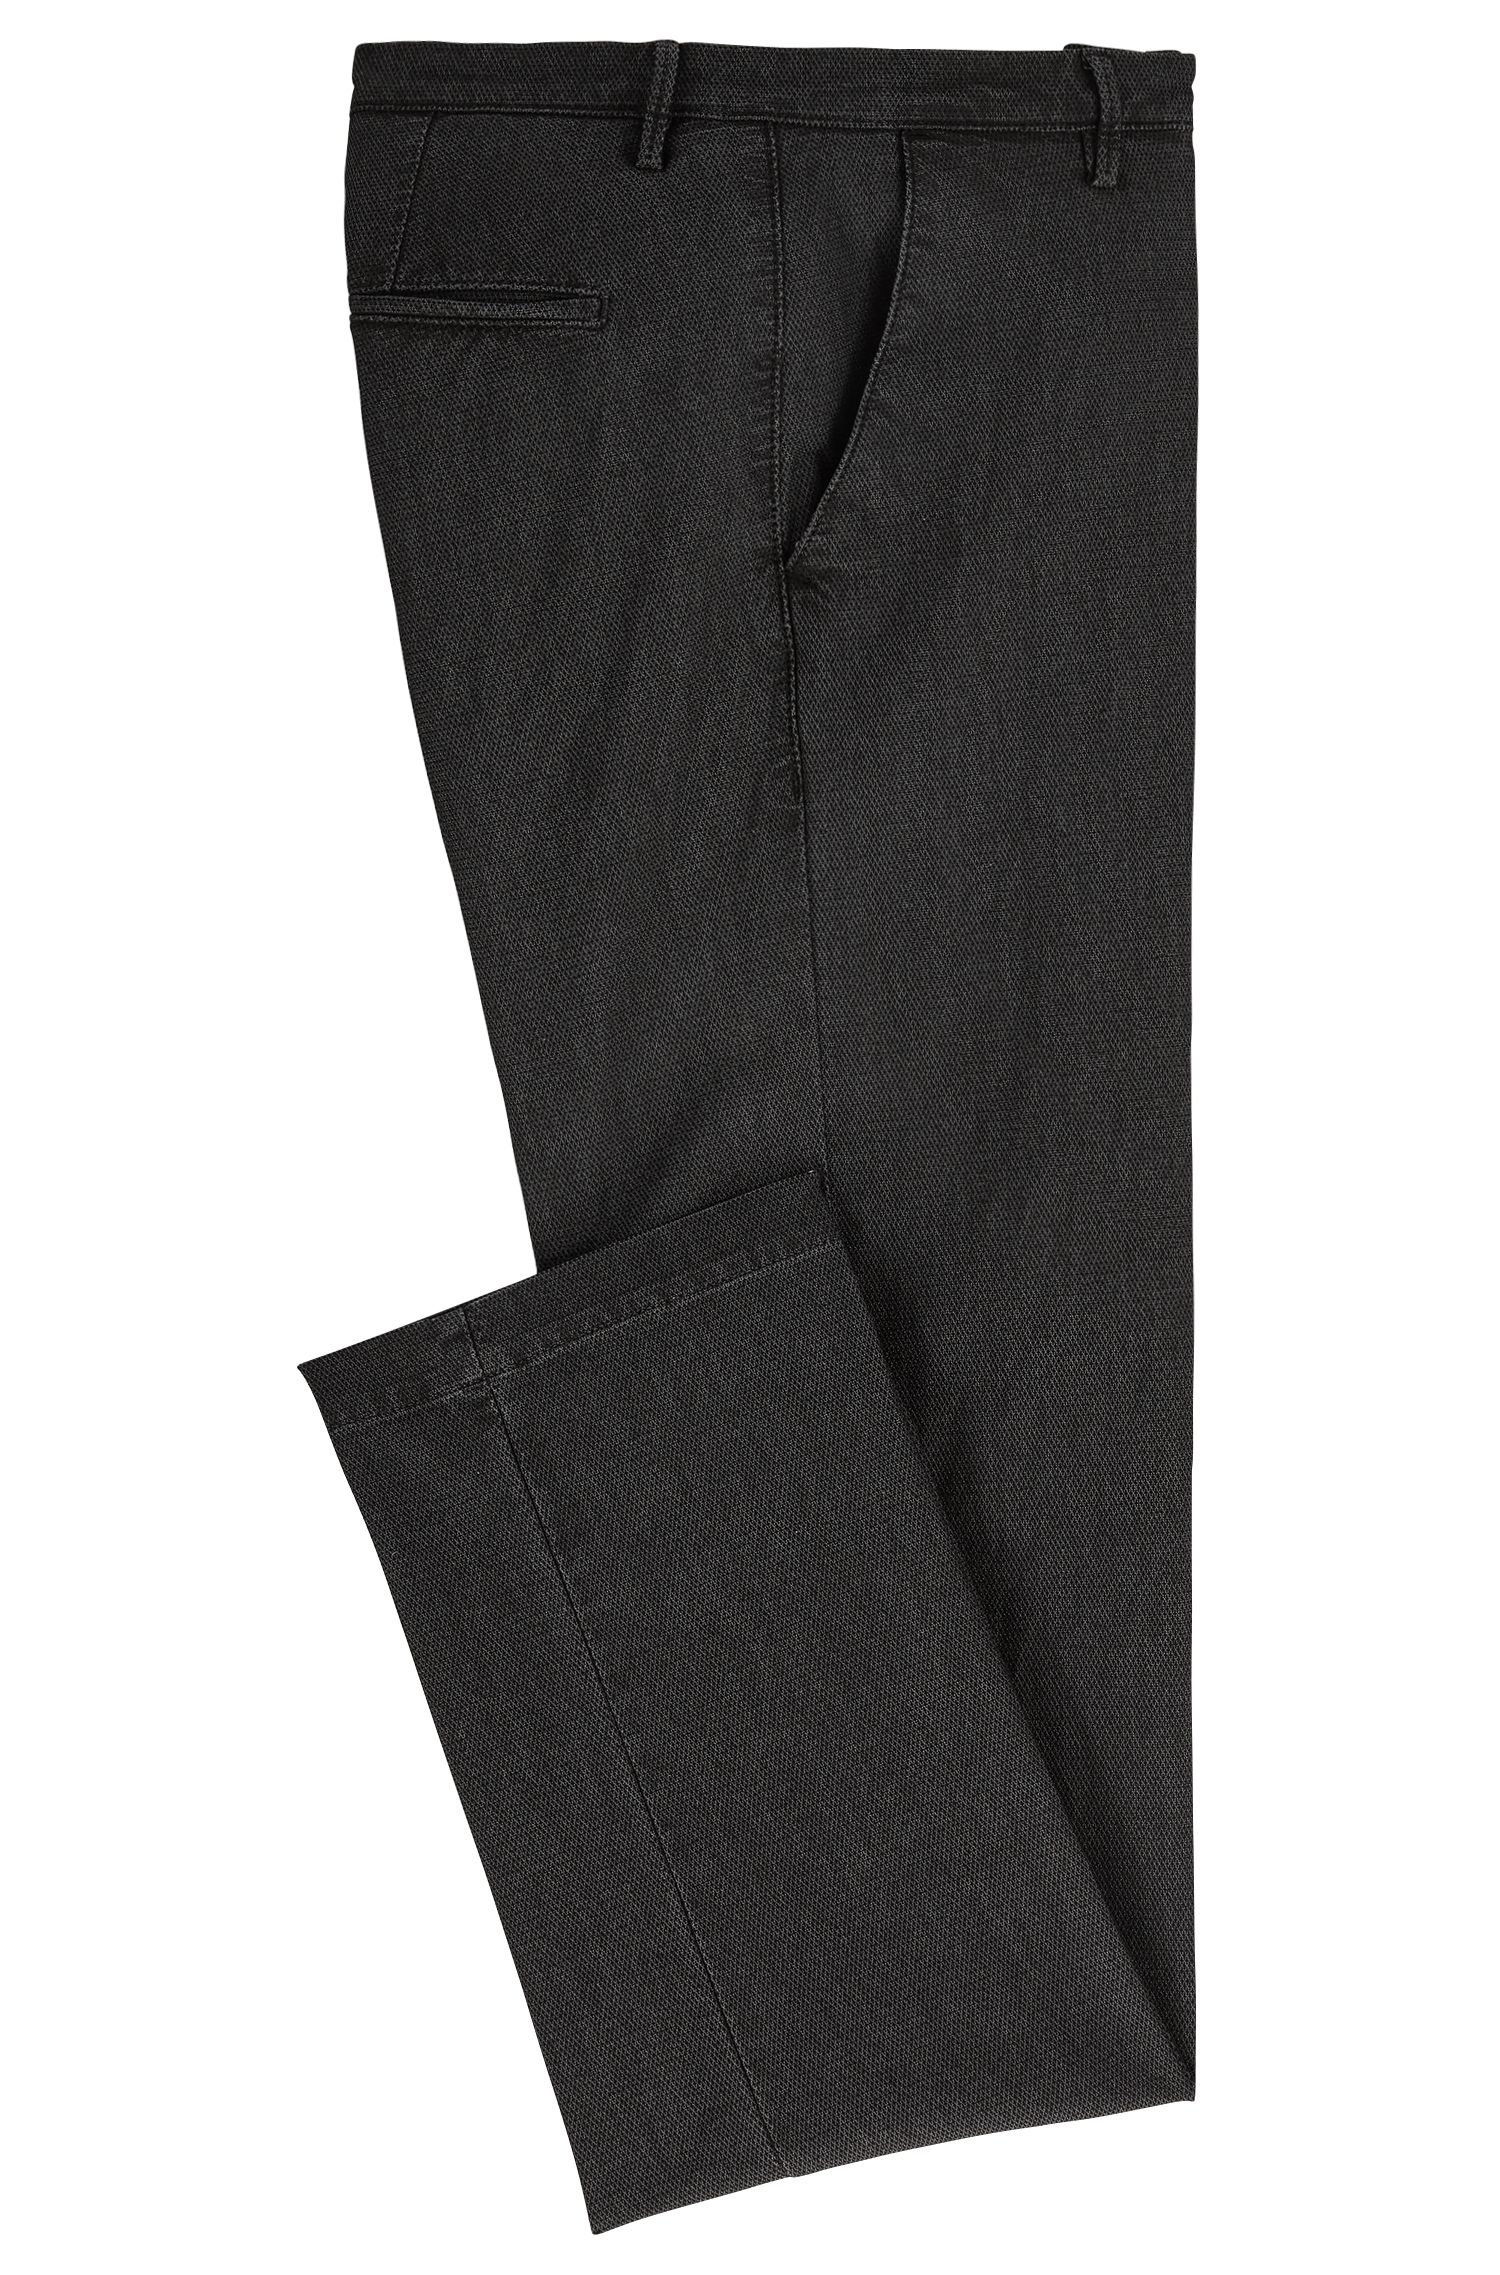 Chino Slim Fit en coton stretch mélangé texturé